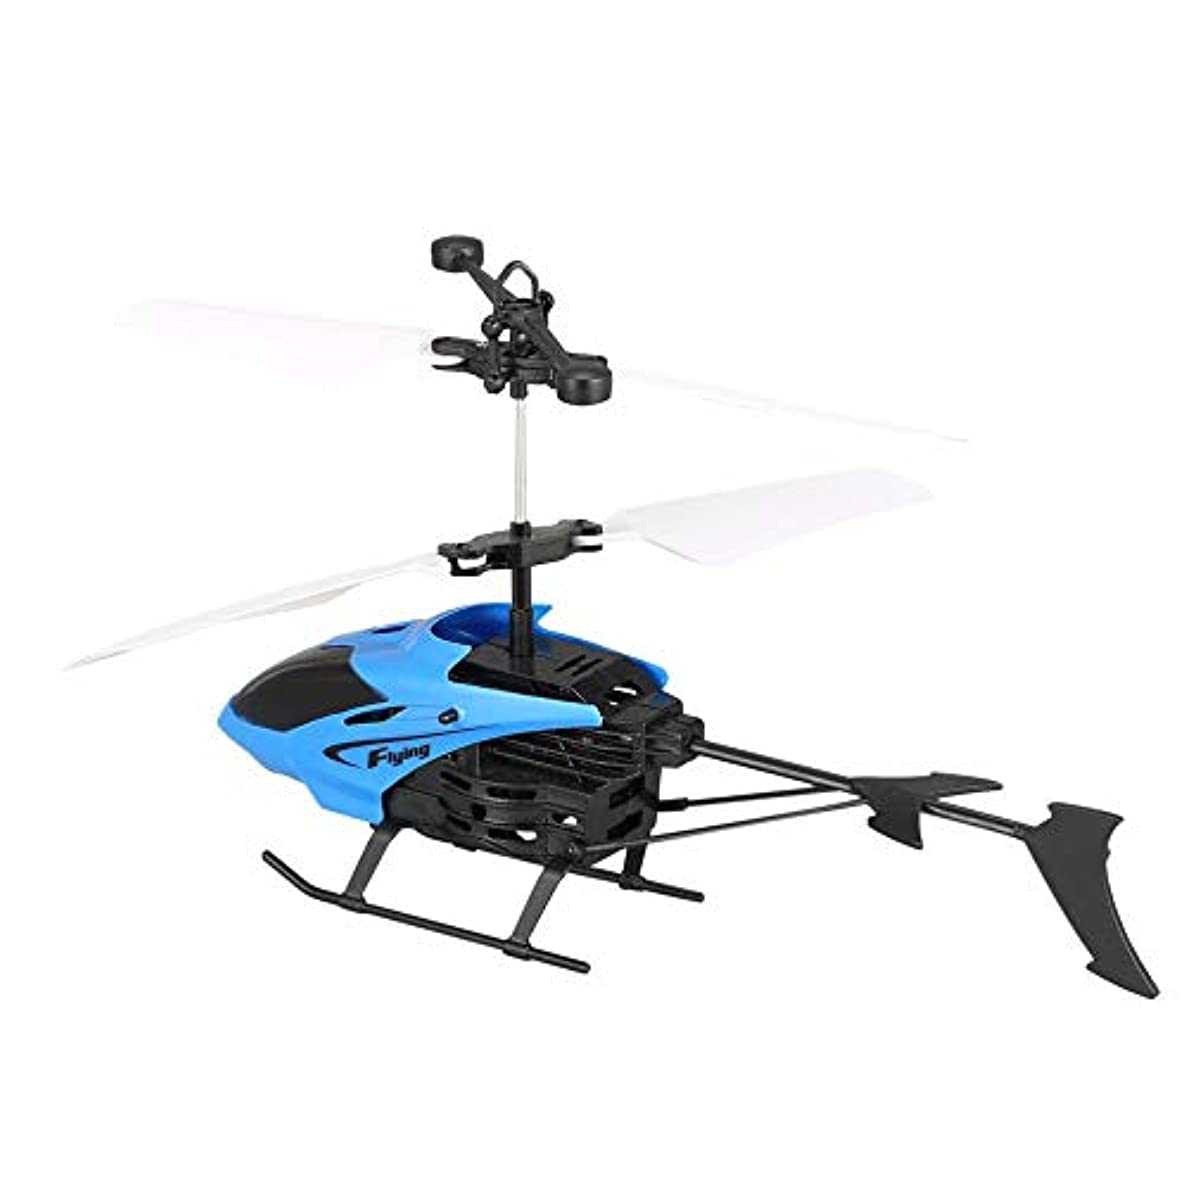 D715 RC Helicopter, D715 Flying Mini Infrared Induction RC Helicopter Drone Remote Control Aircraft with LED Flashing Light for Kids Toys Gift